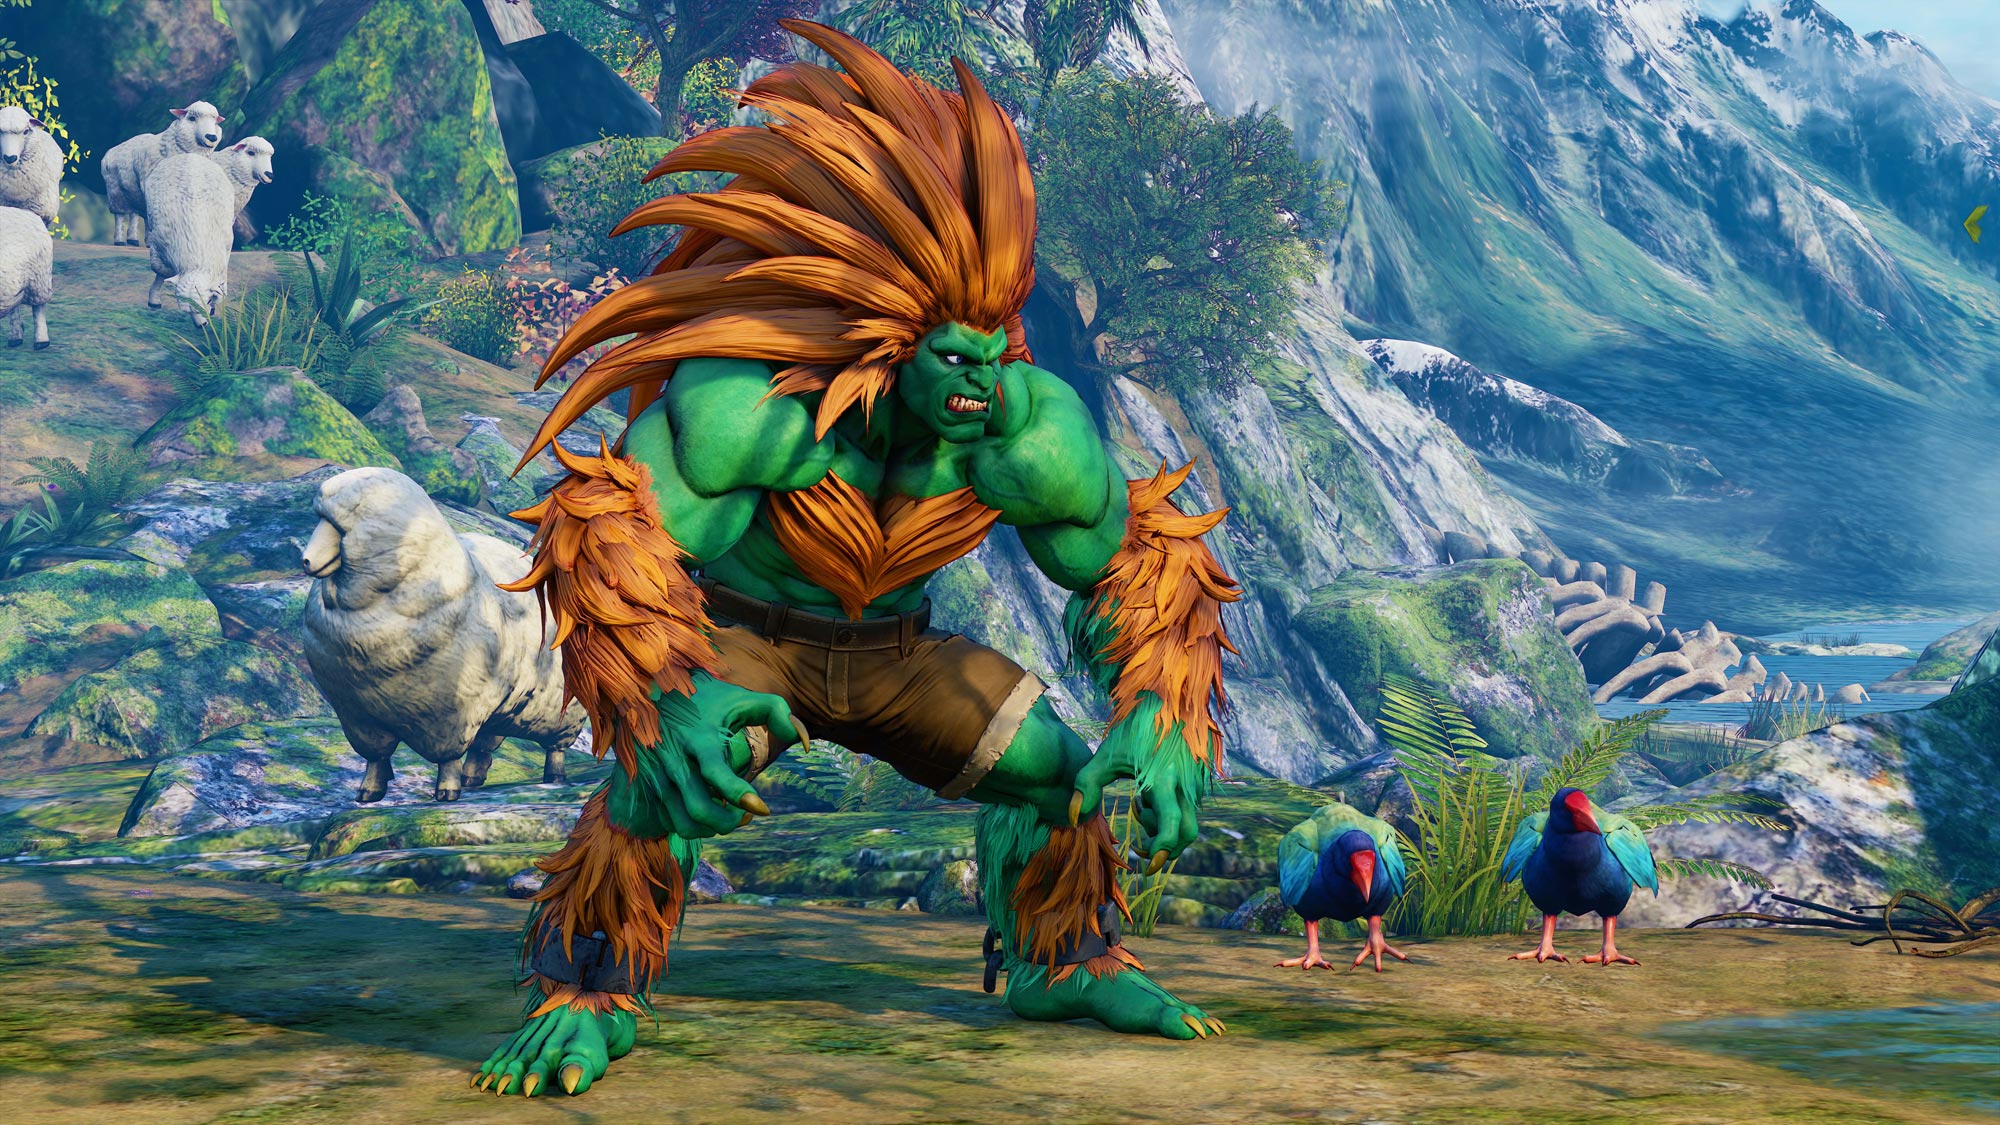 Blanka in Street Fighter 5: Arcade Edition 3 out of 11 image gallery